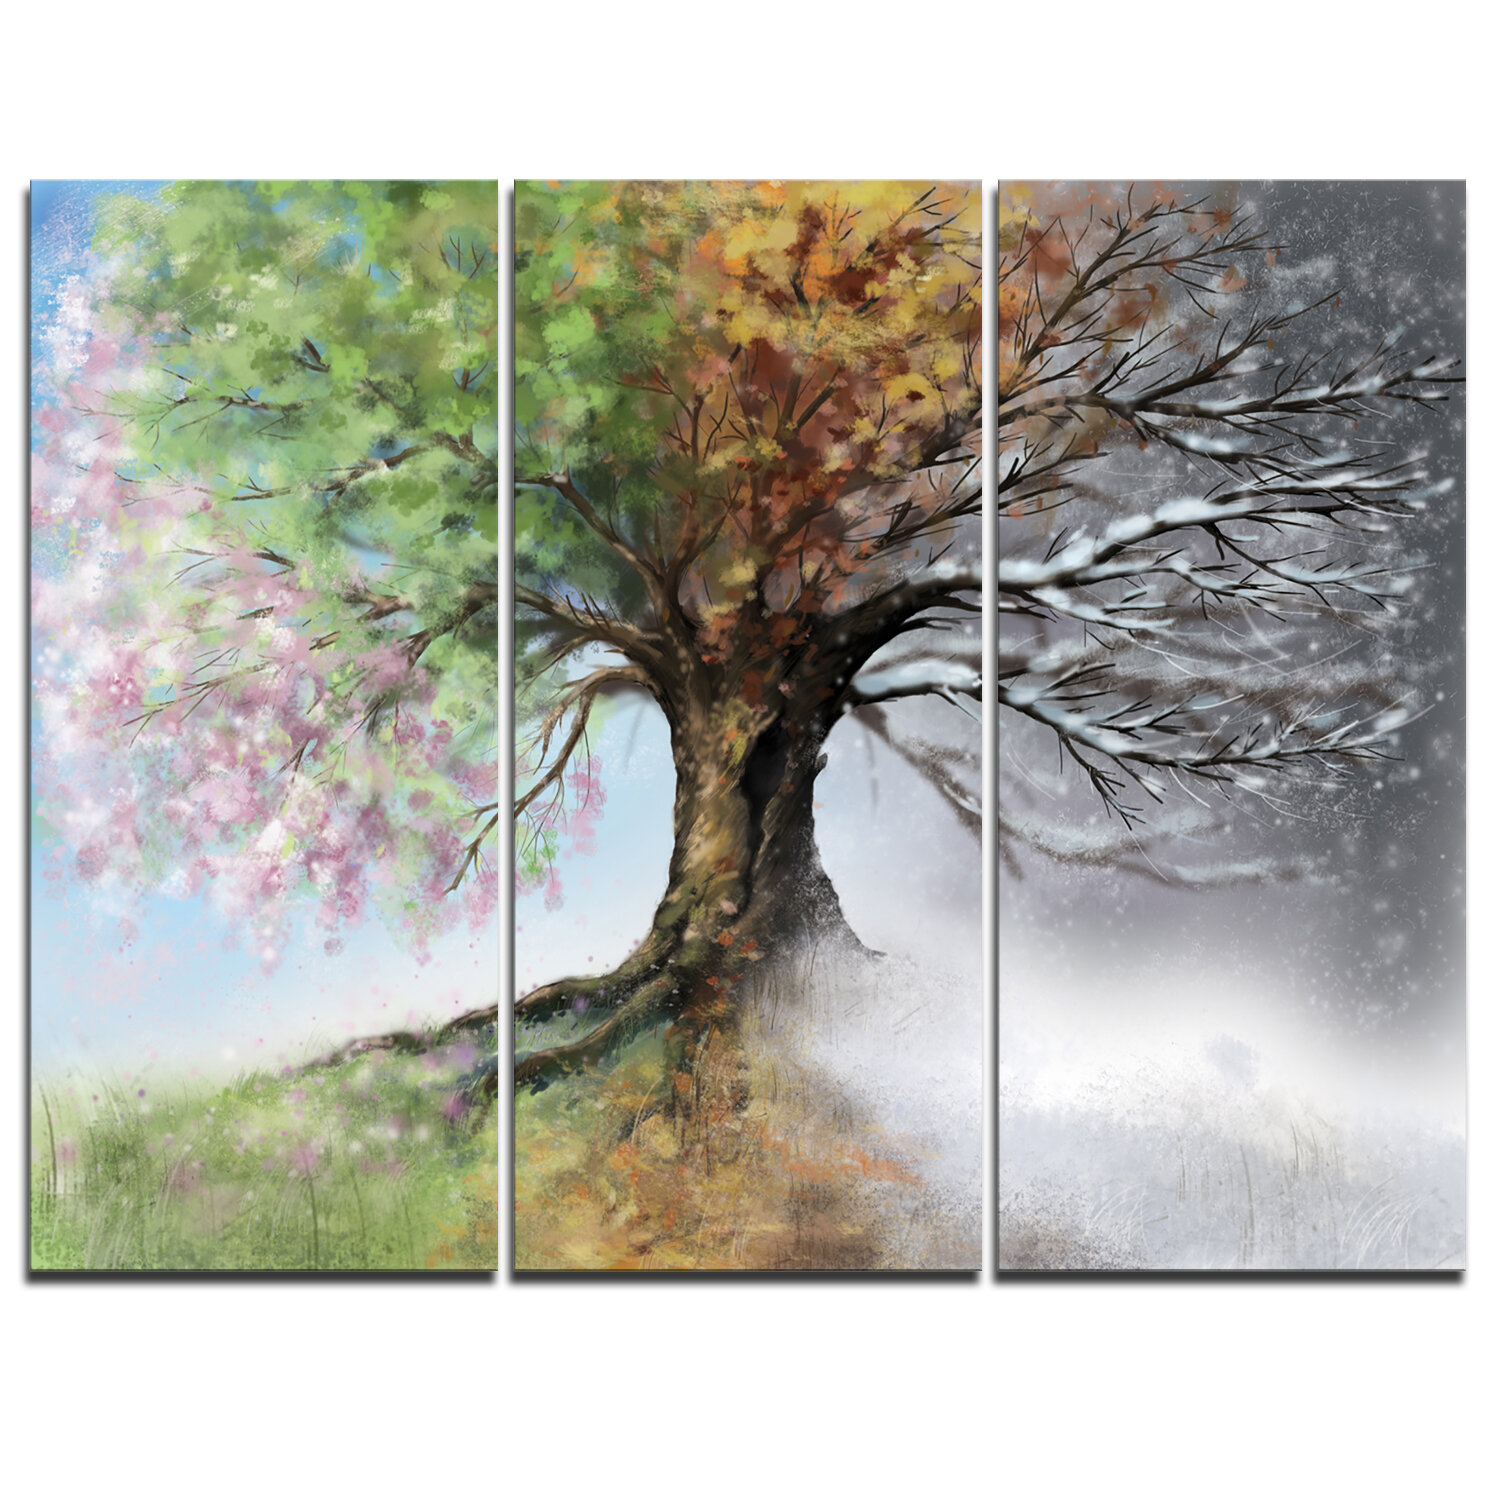 Ebern Designs Tree With Four Seasons 3 Piece Graphic Art On Wrapped Canvas Set Reviews Wayfair